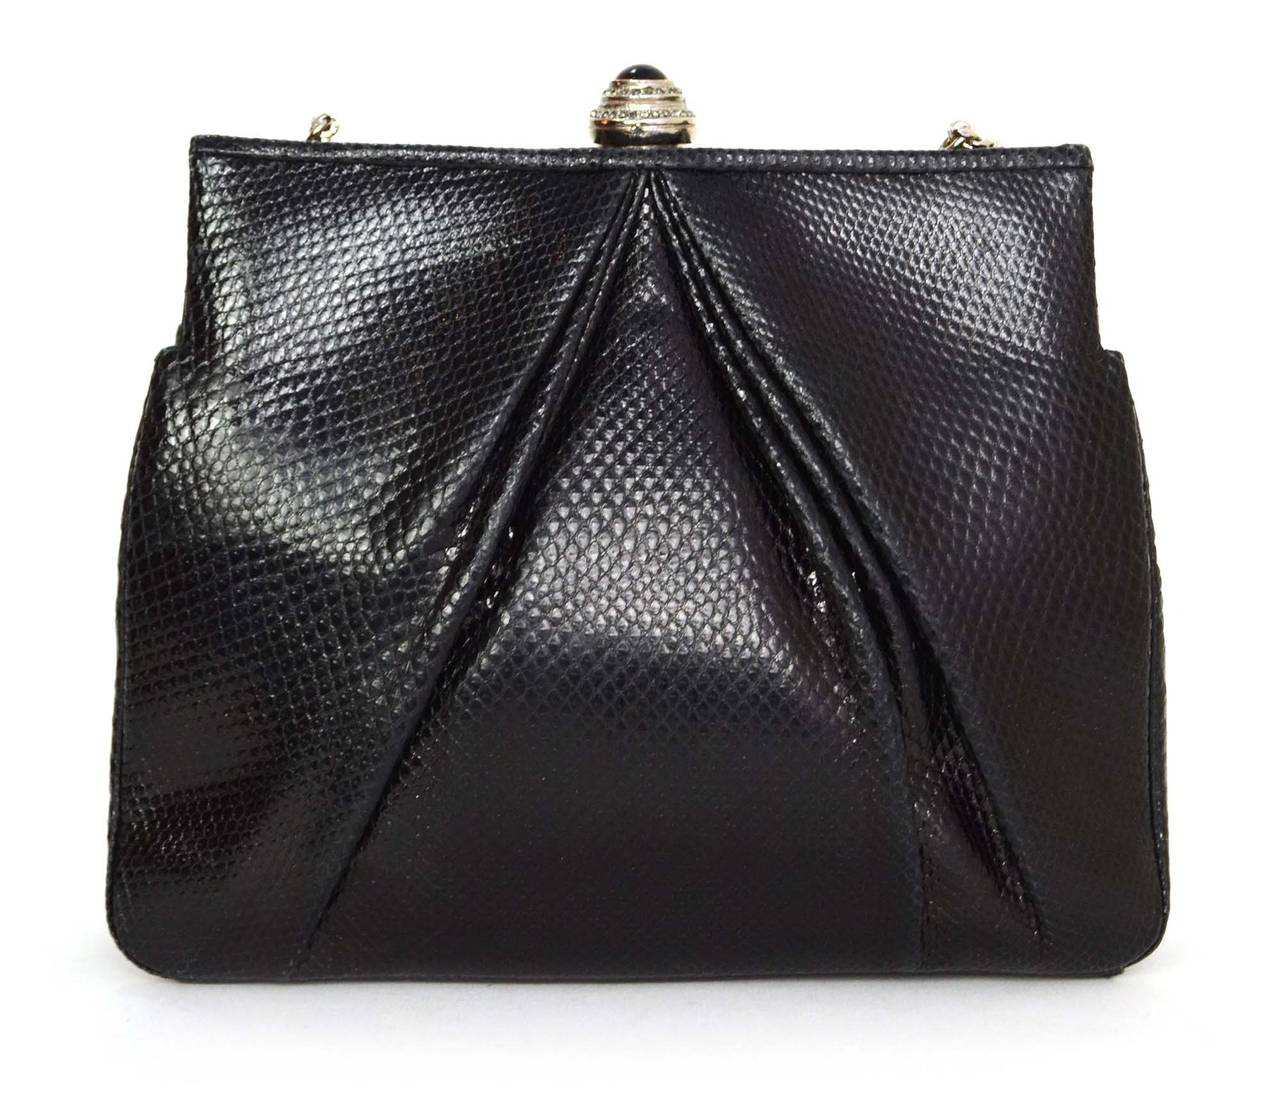 JUDITH LEIBER Black Lizard Skin & Rhinestone Evening Bag SHW In Excellent Condition For Sale In New York, NY